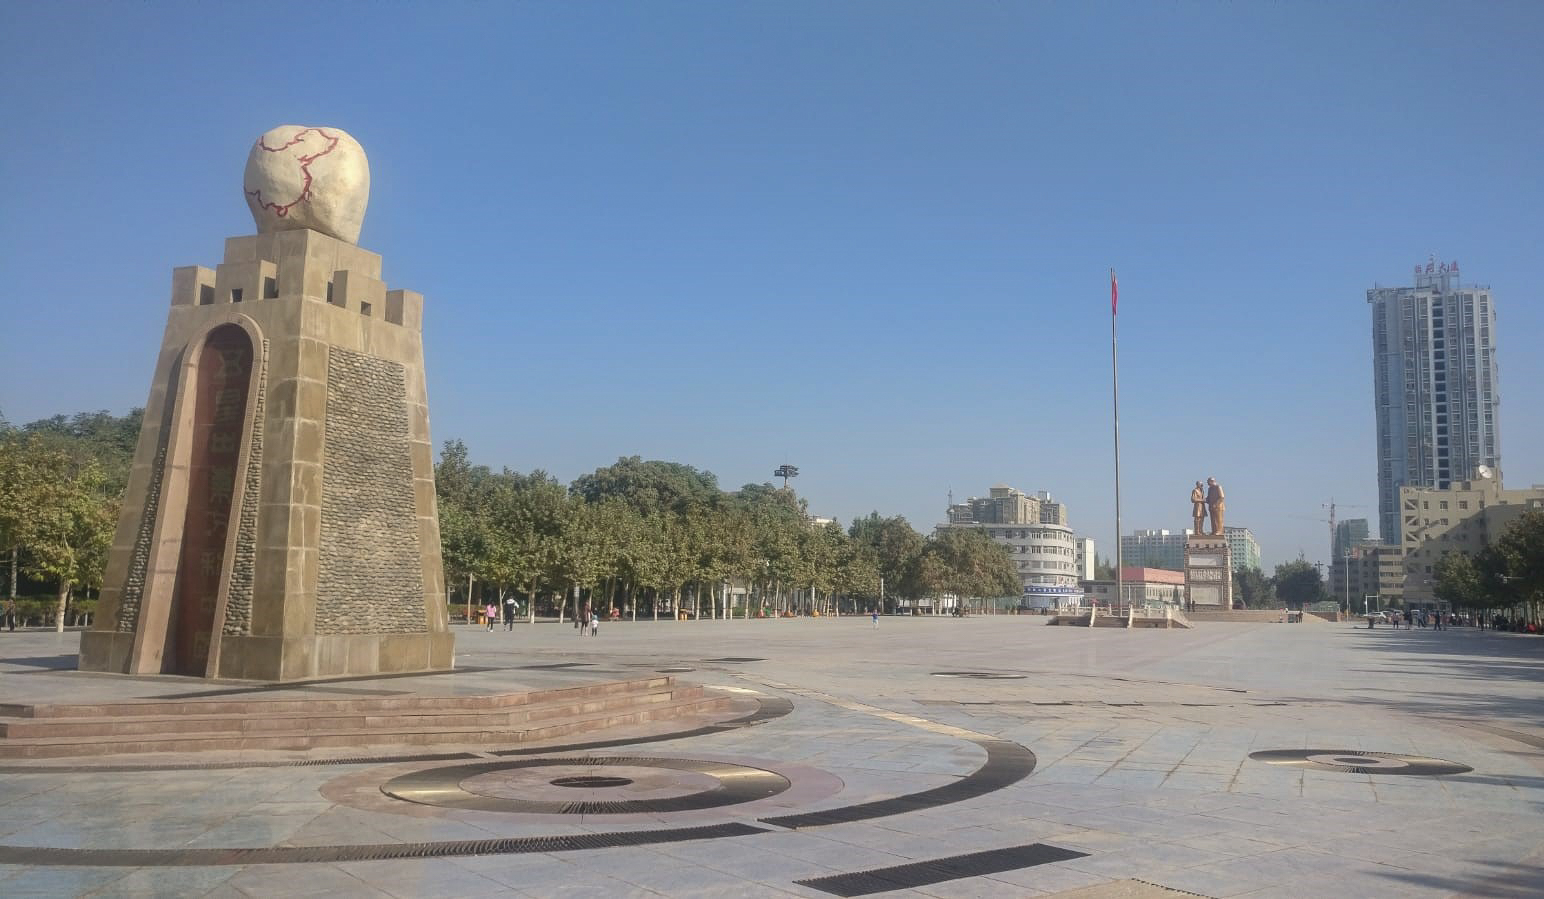 In Hotan. Interesting map of China on the monument.